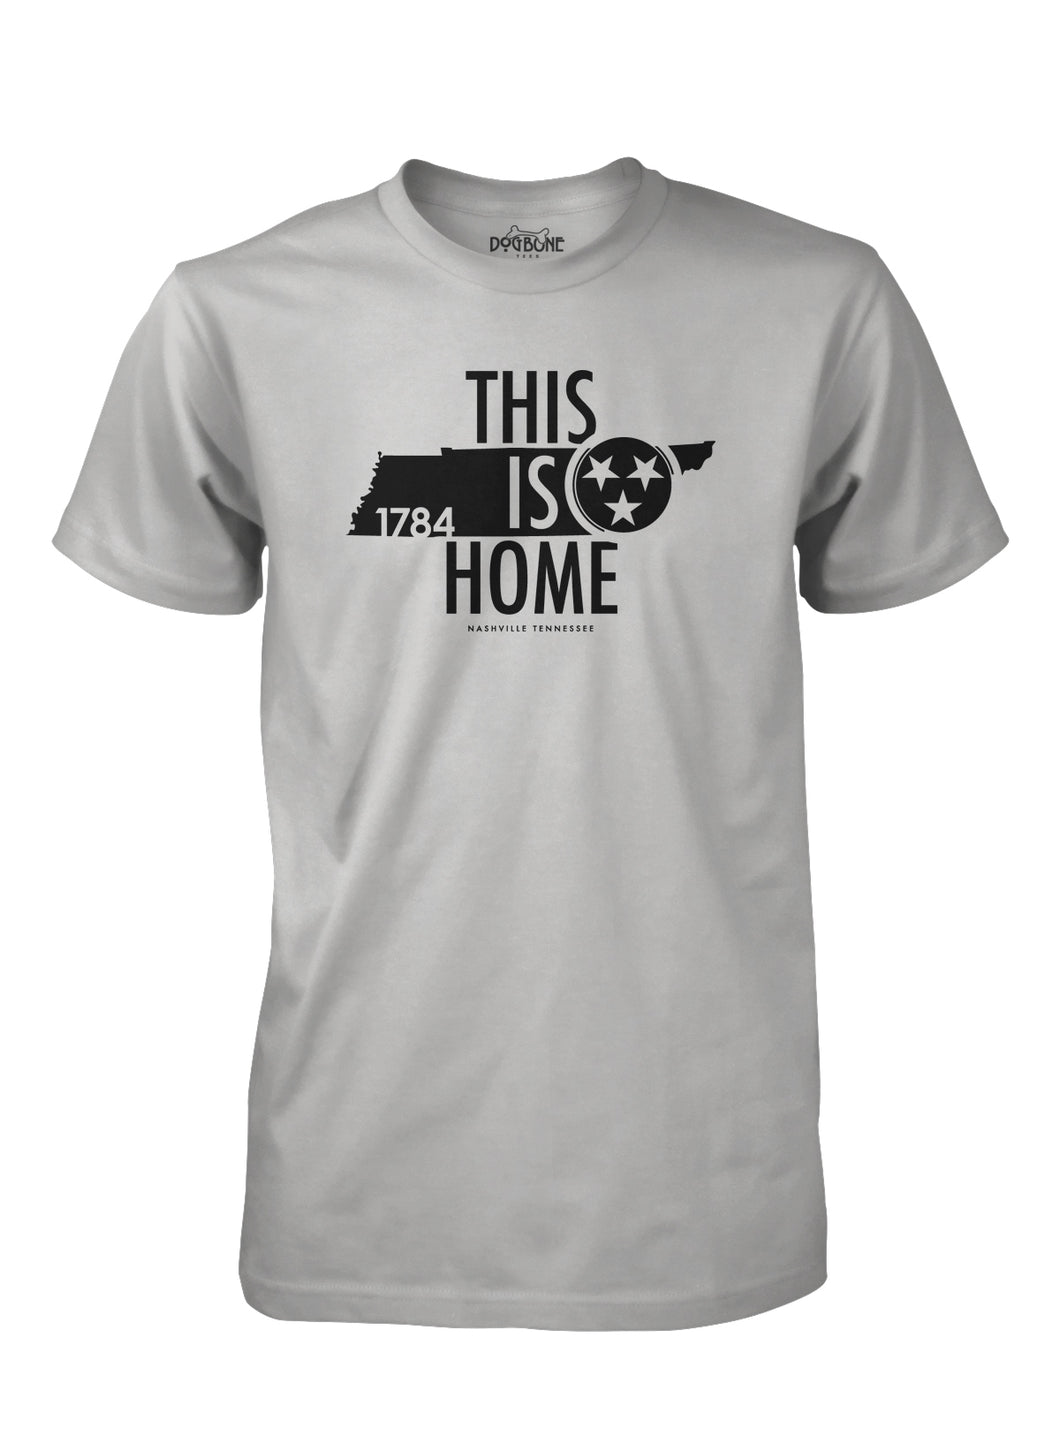 This Is Home in LT Gray with Black print